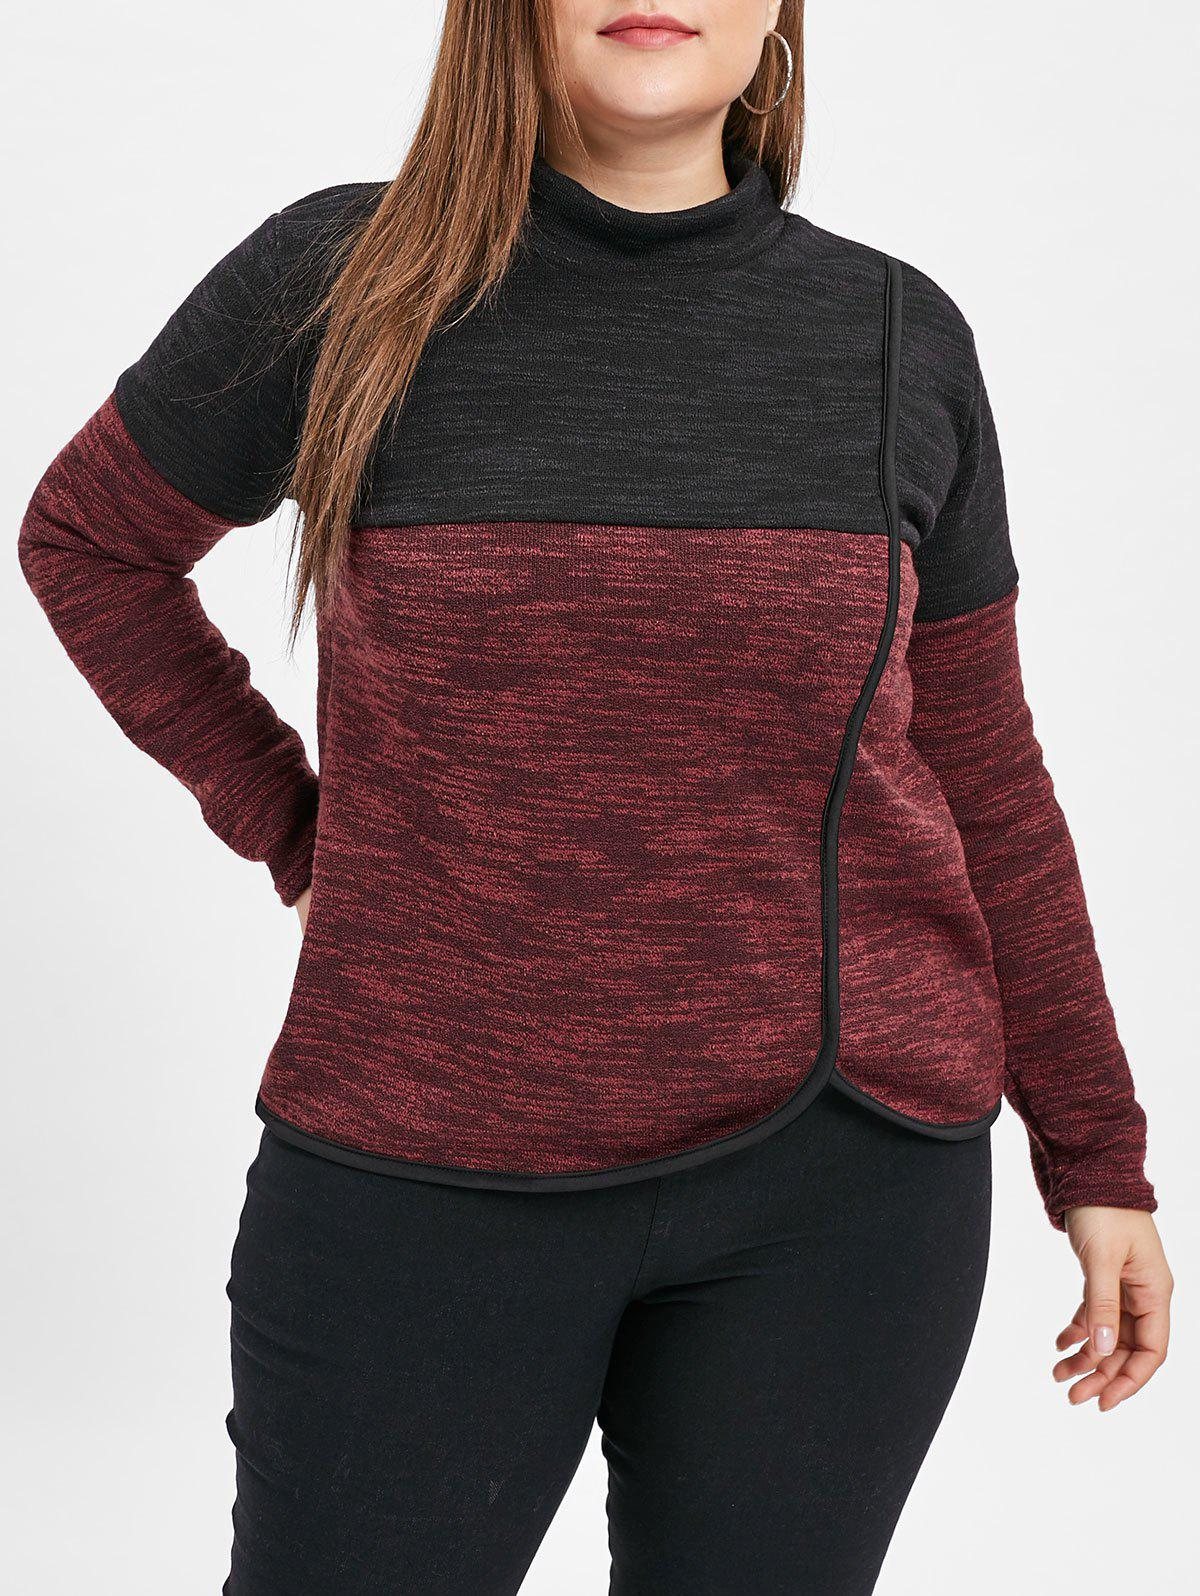 Online Mock Neck Plus Size Two Tone Sweatshirt